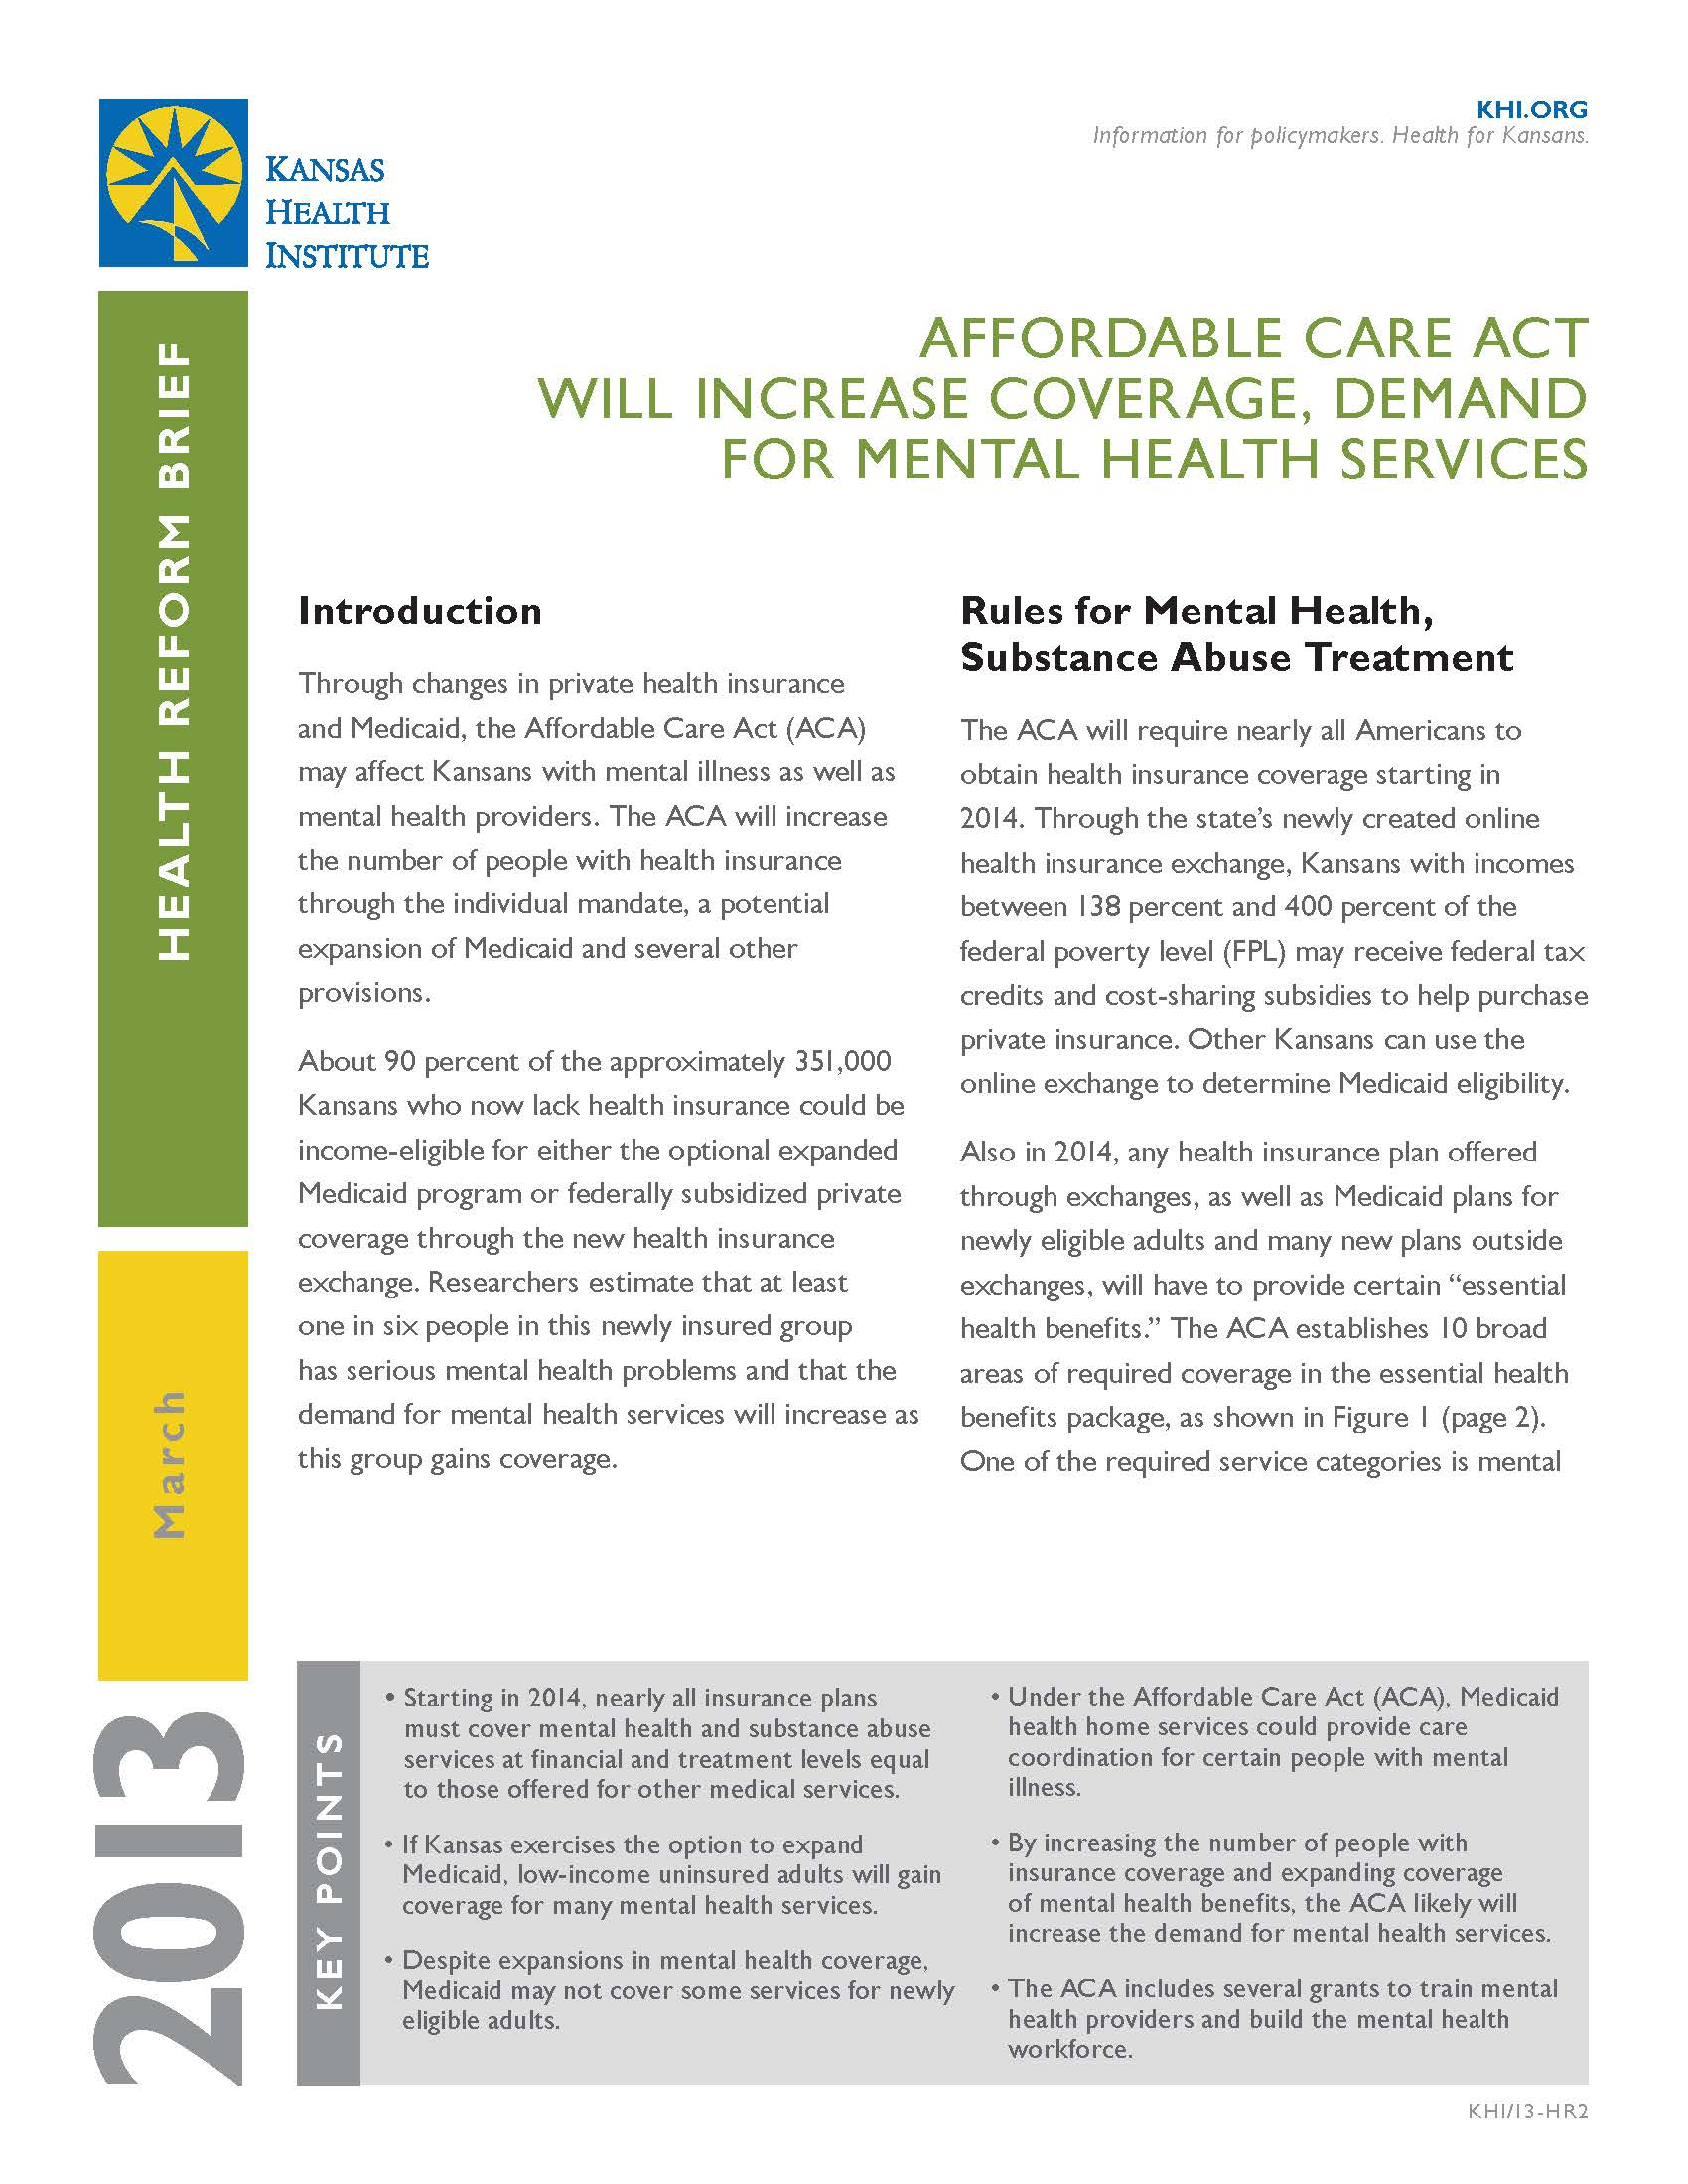 Health Reform Brief Affordable Care Act Will Increase Coverage